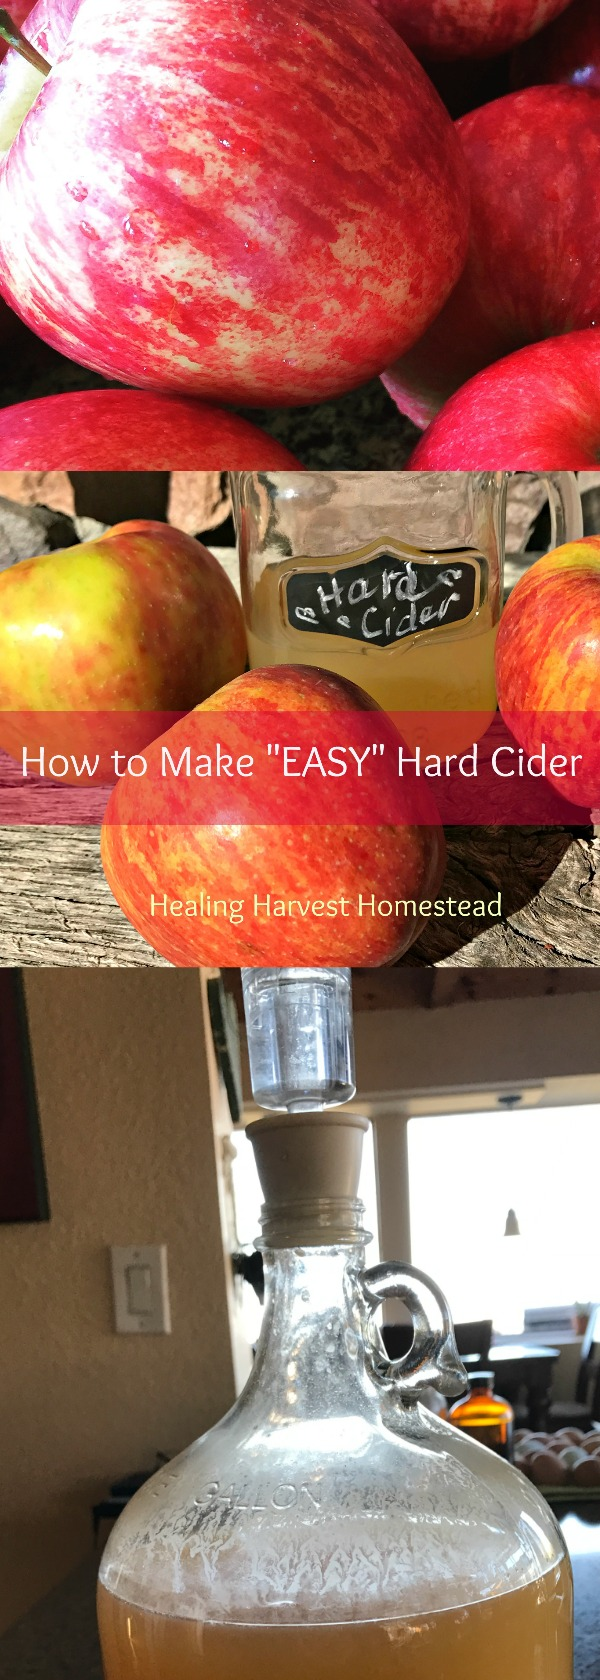 "It's ""EASY"" to make hard apple cider! Here's how we made our first batch and how it turned out!"